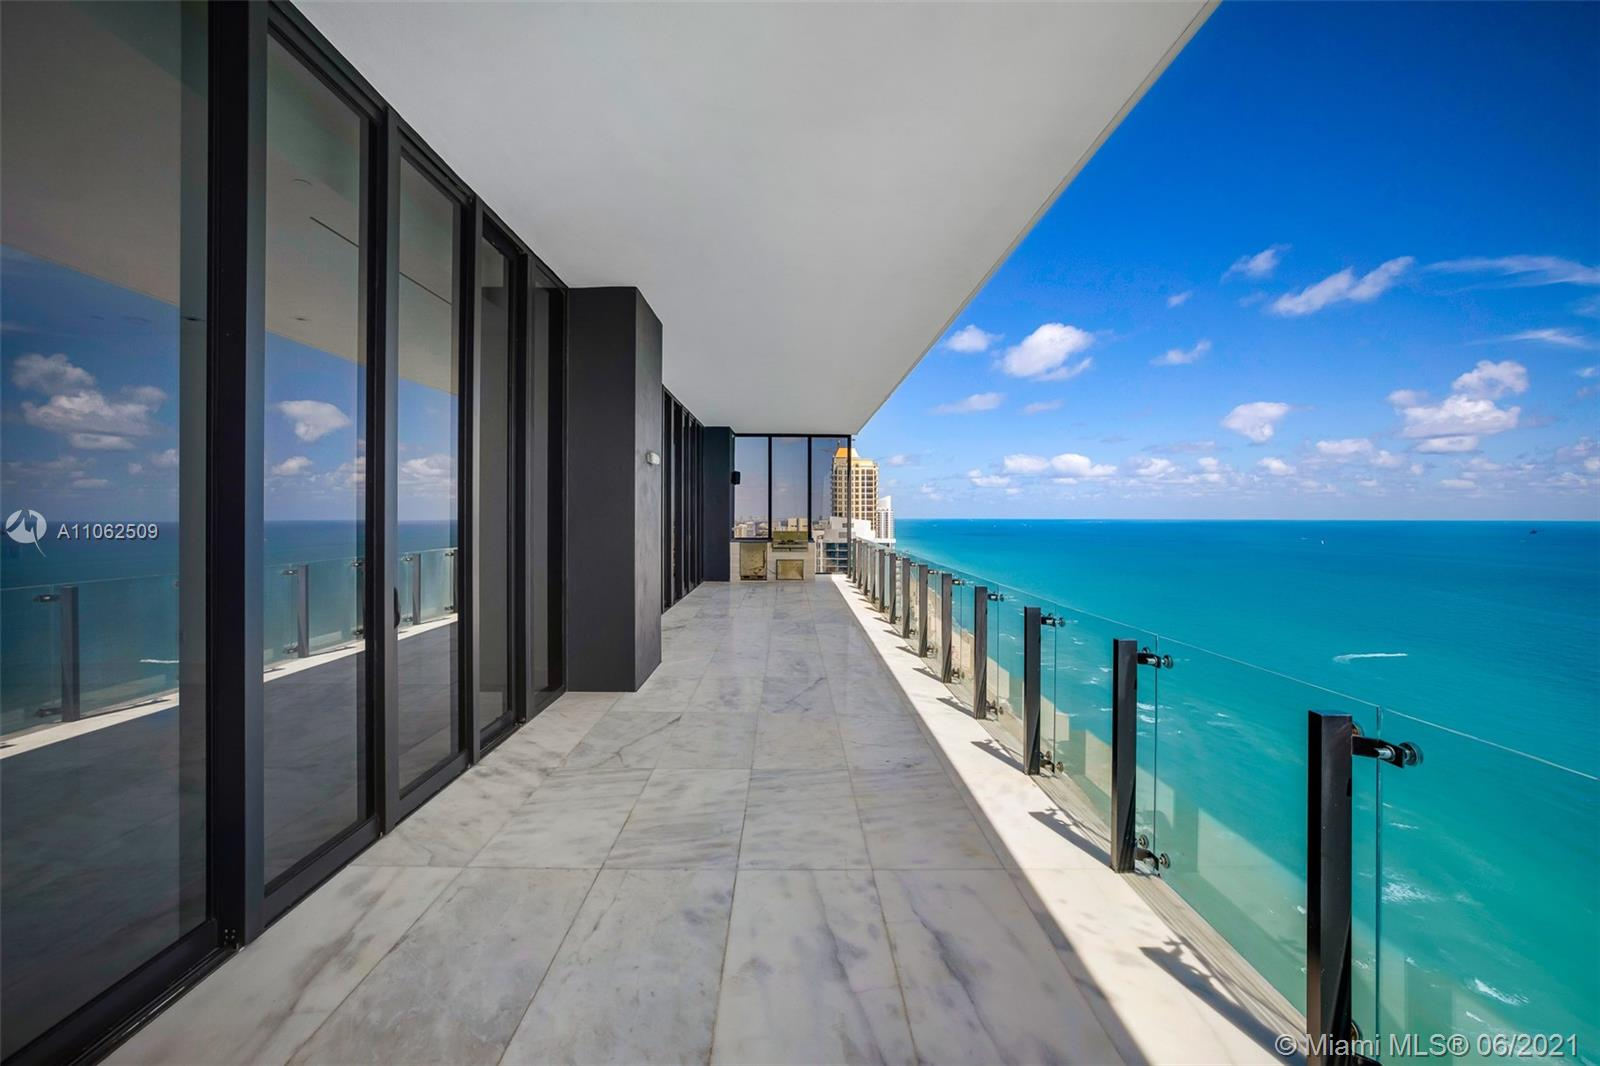 17141  Collins Ave #3401 For Sale A11062509, FL